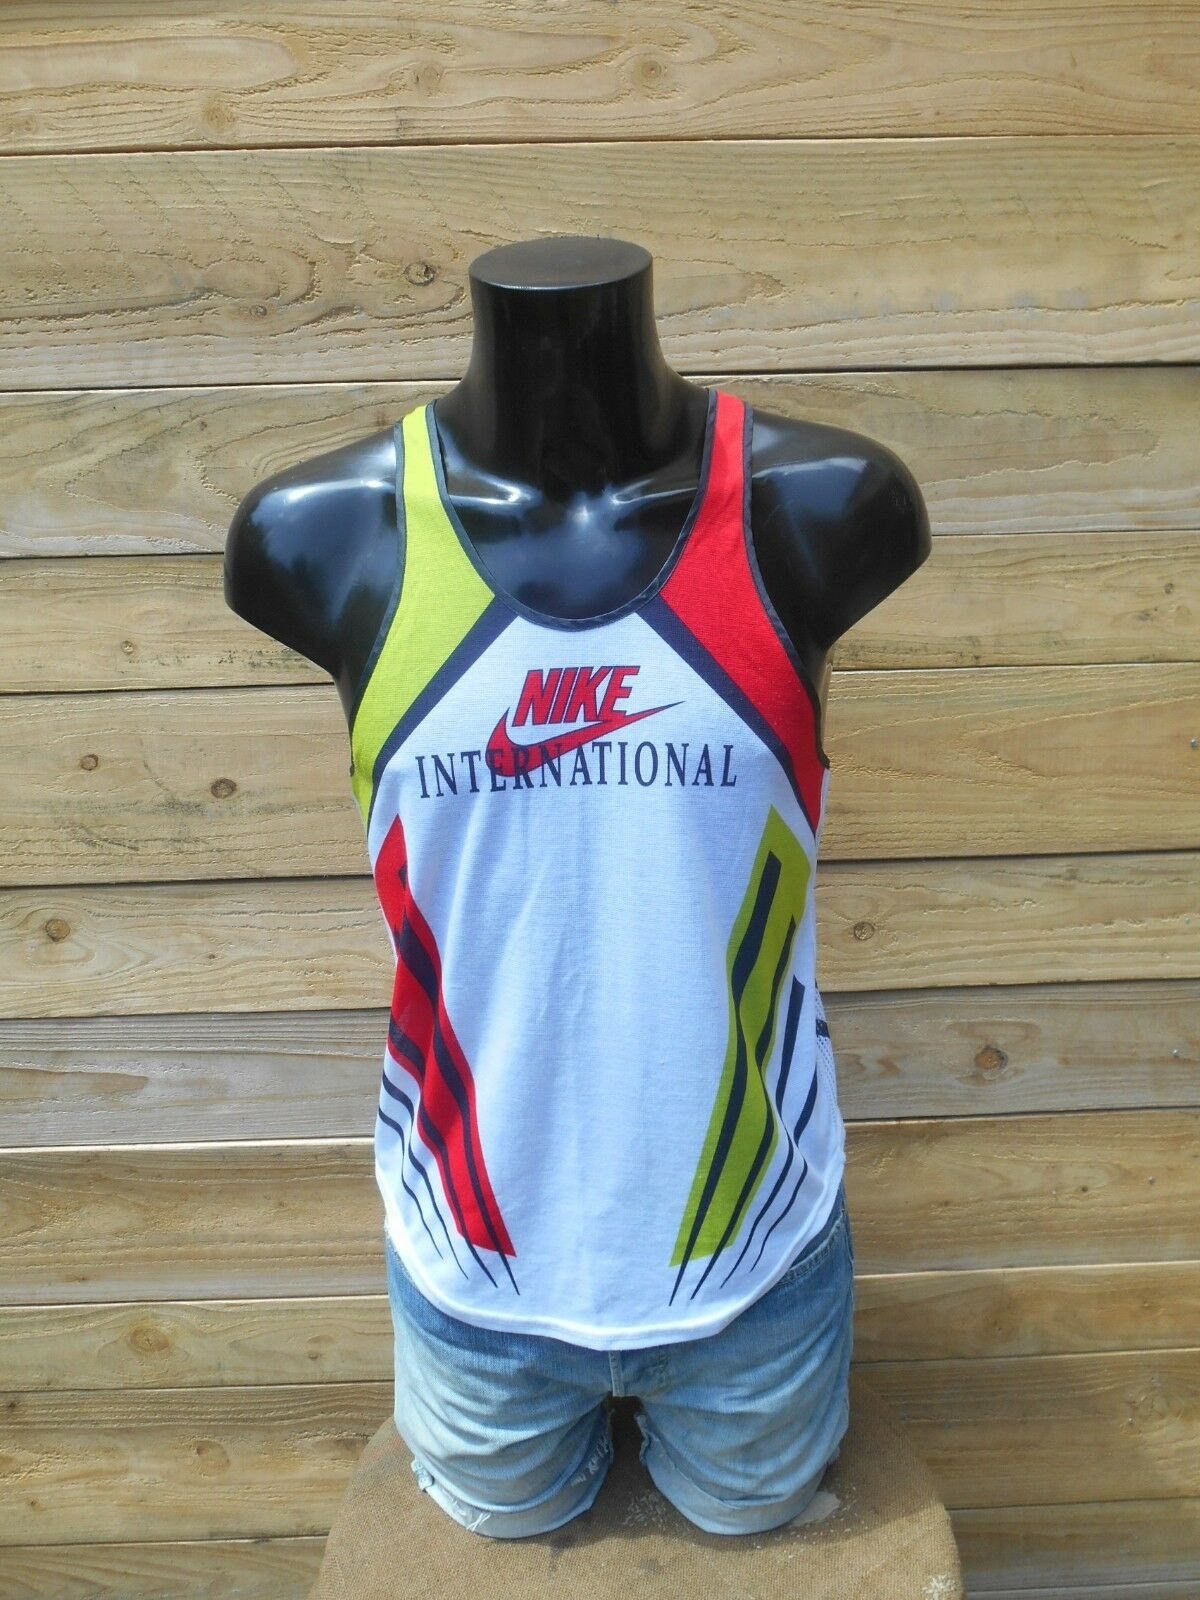 NIKE International Maillot Jersey Vintage 90s Made in UK Athletic Running Sprint